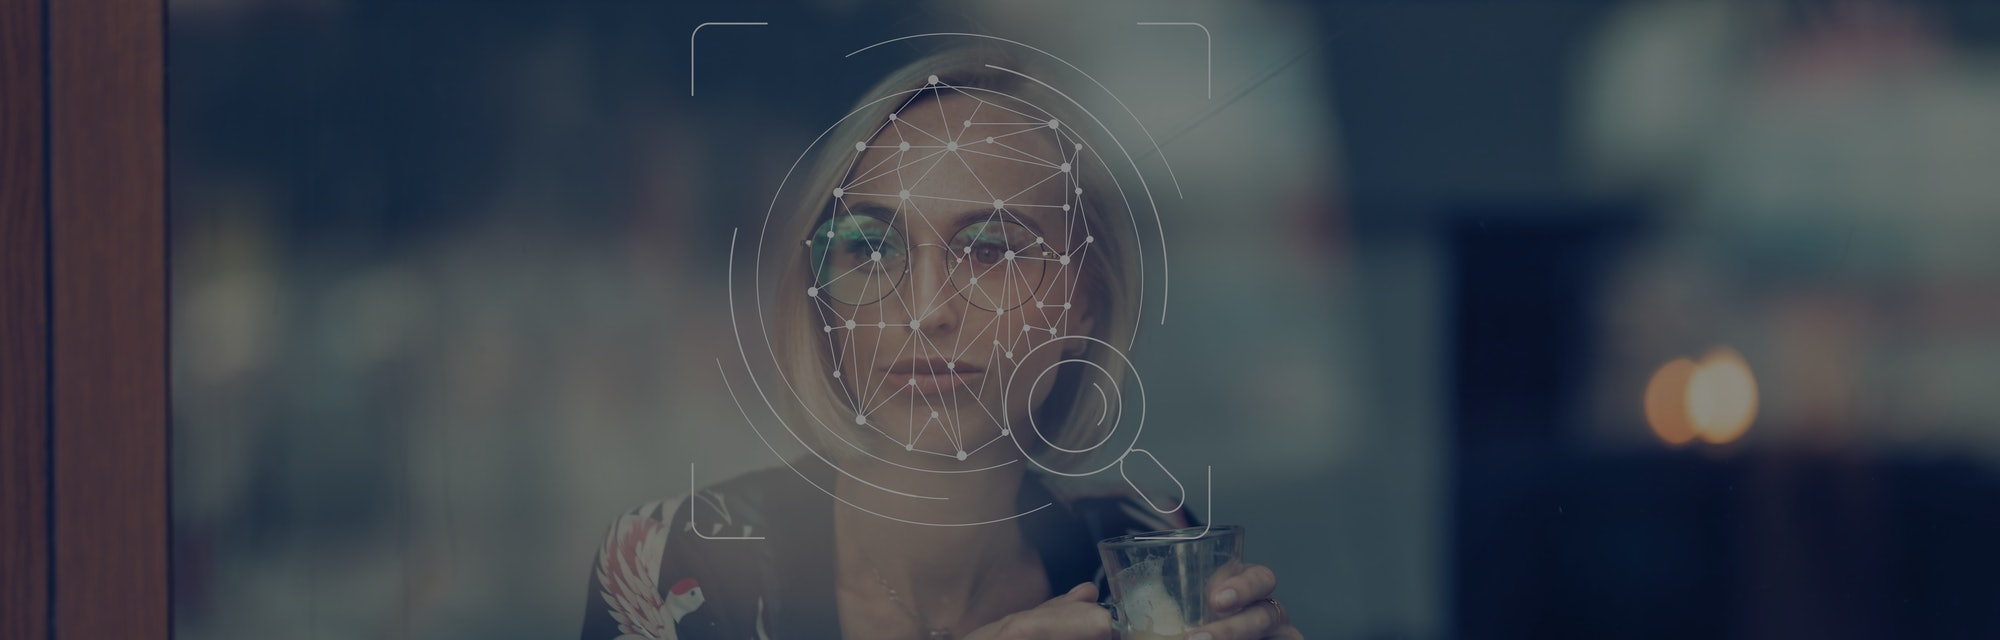 Face ID technology facial recognition use in biometric security for phone or mobile scanning detection. Smart artificial intelligence facial recognition for identity verification used data protection.